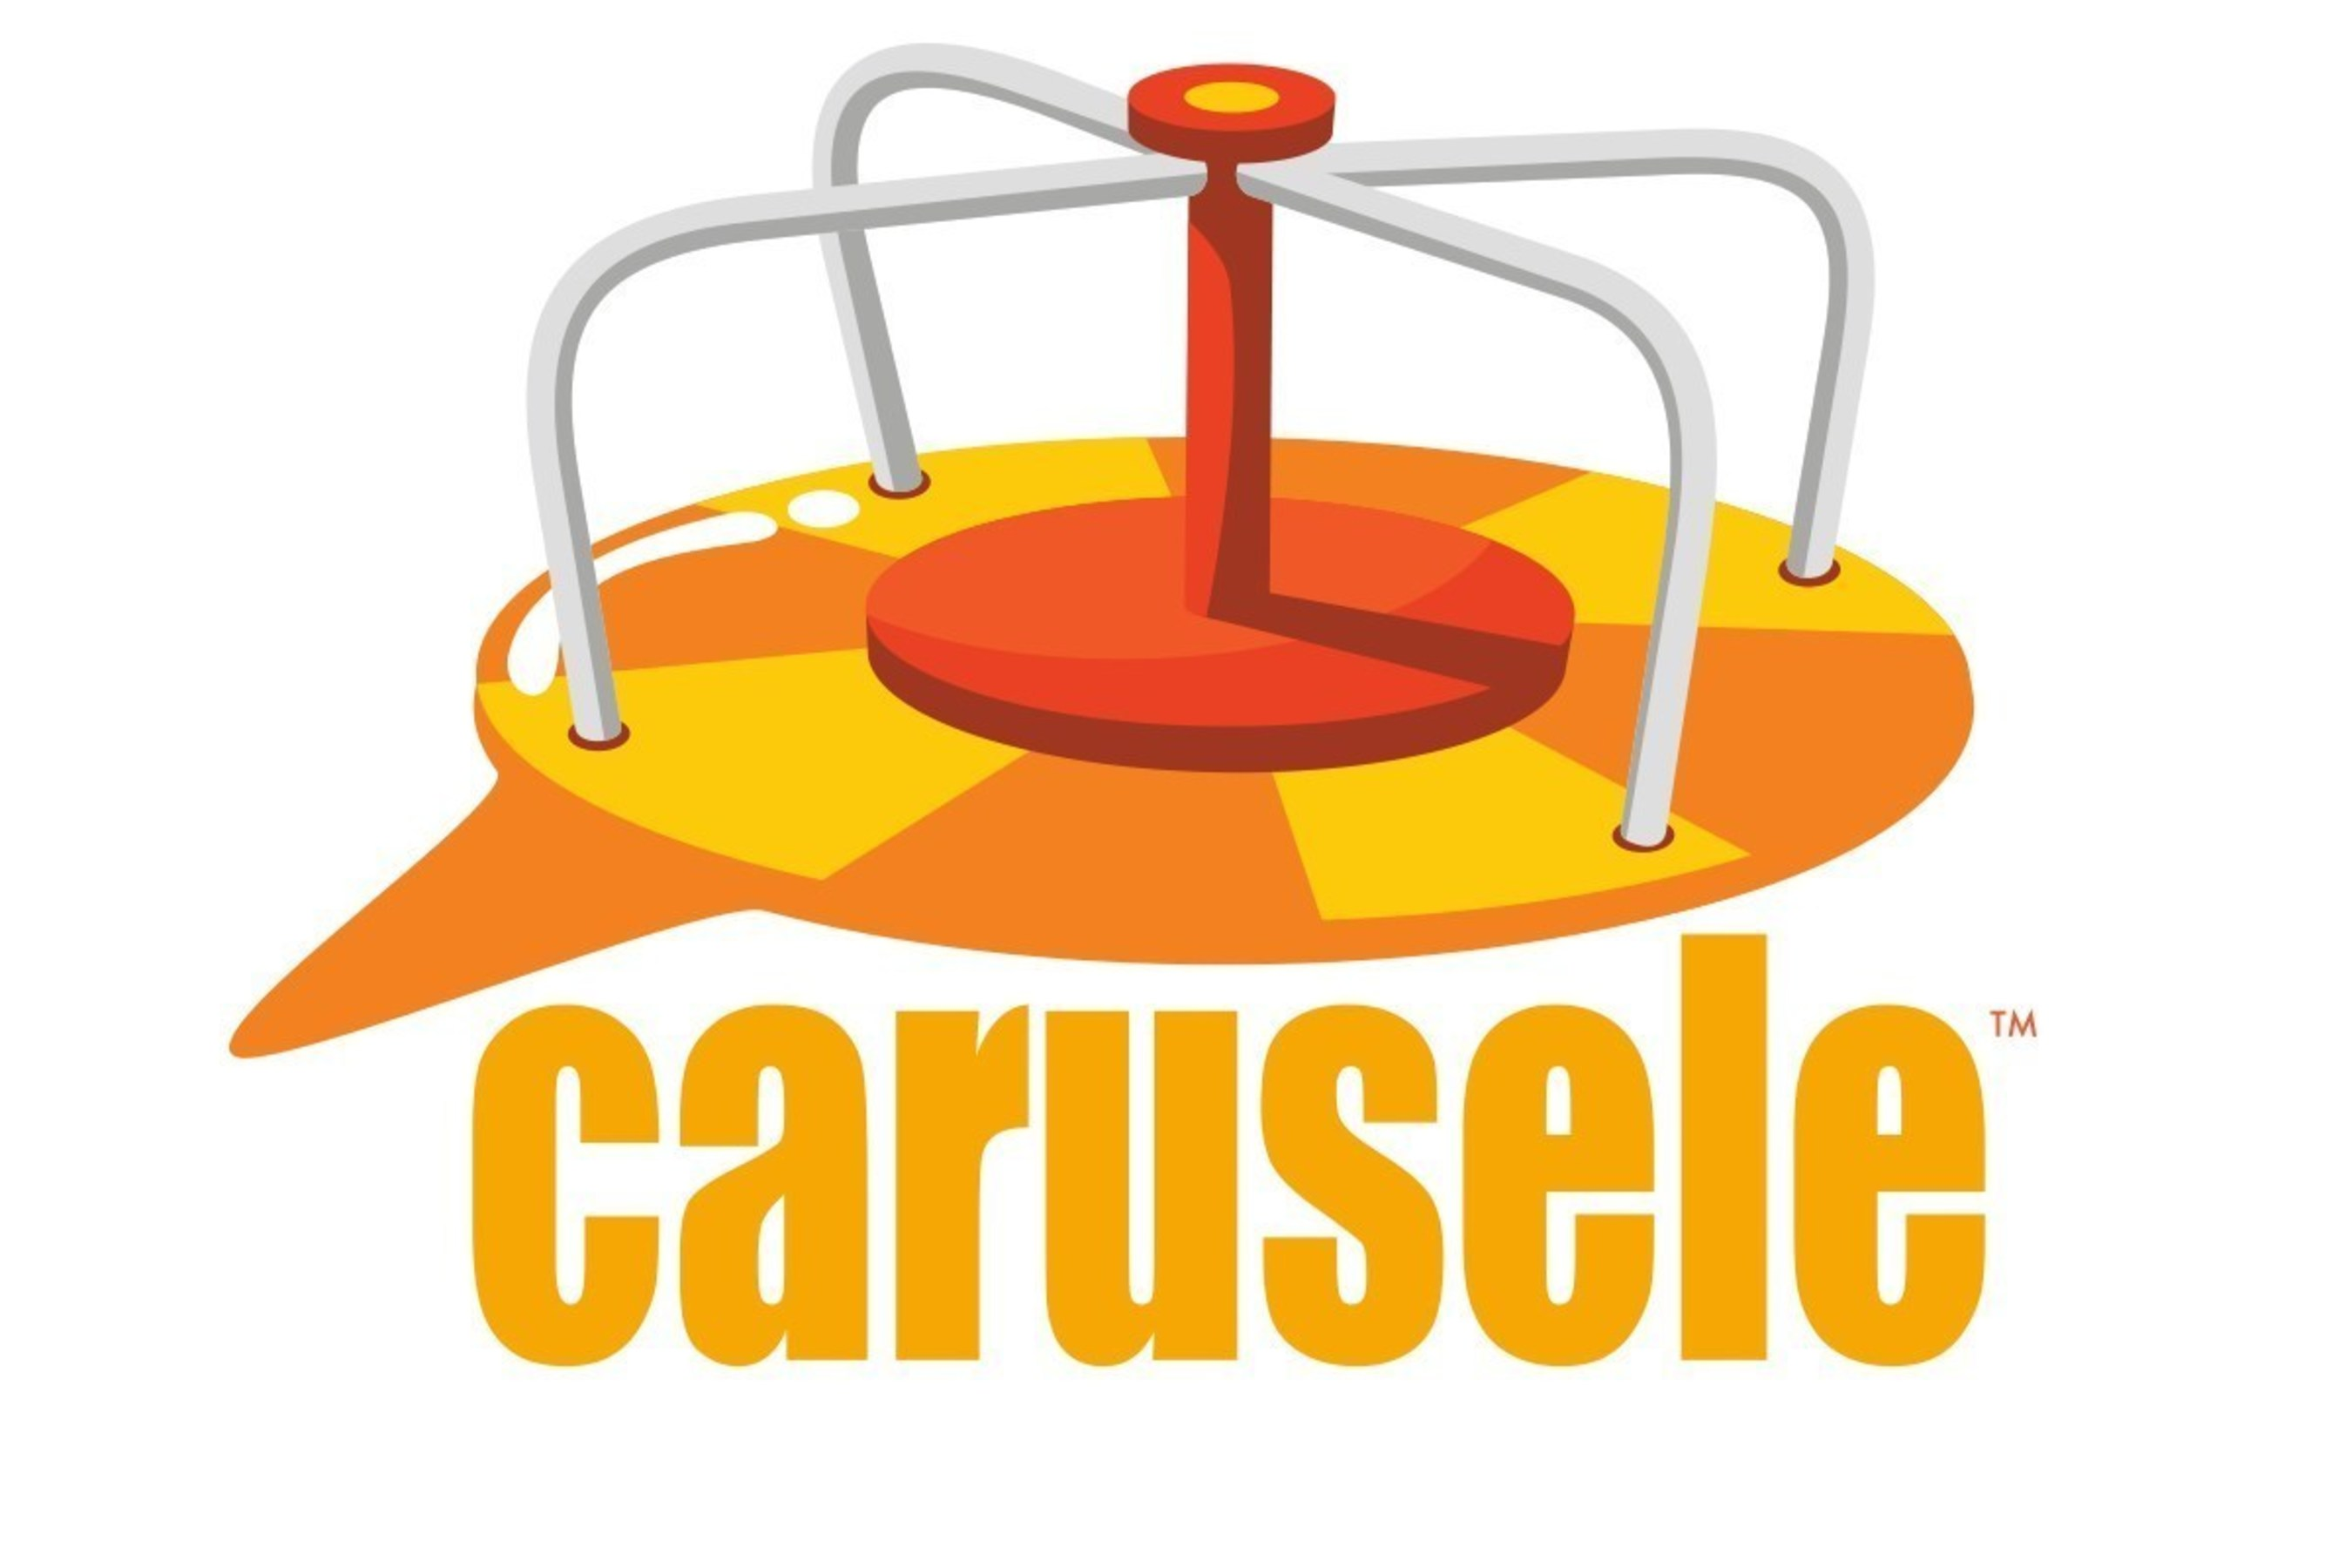 Carusele Media Serves 1 Billion Impressions of Native Advertising Since Launch